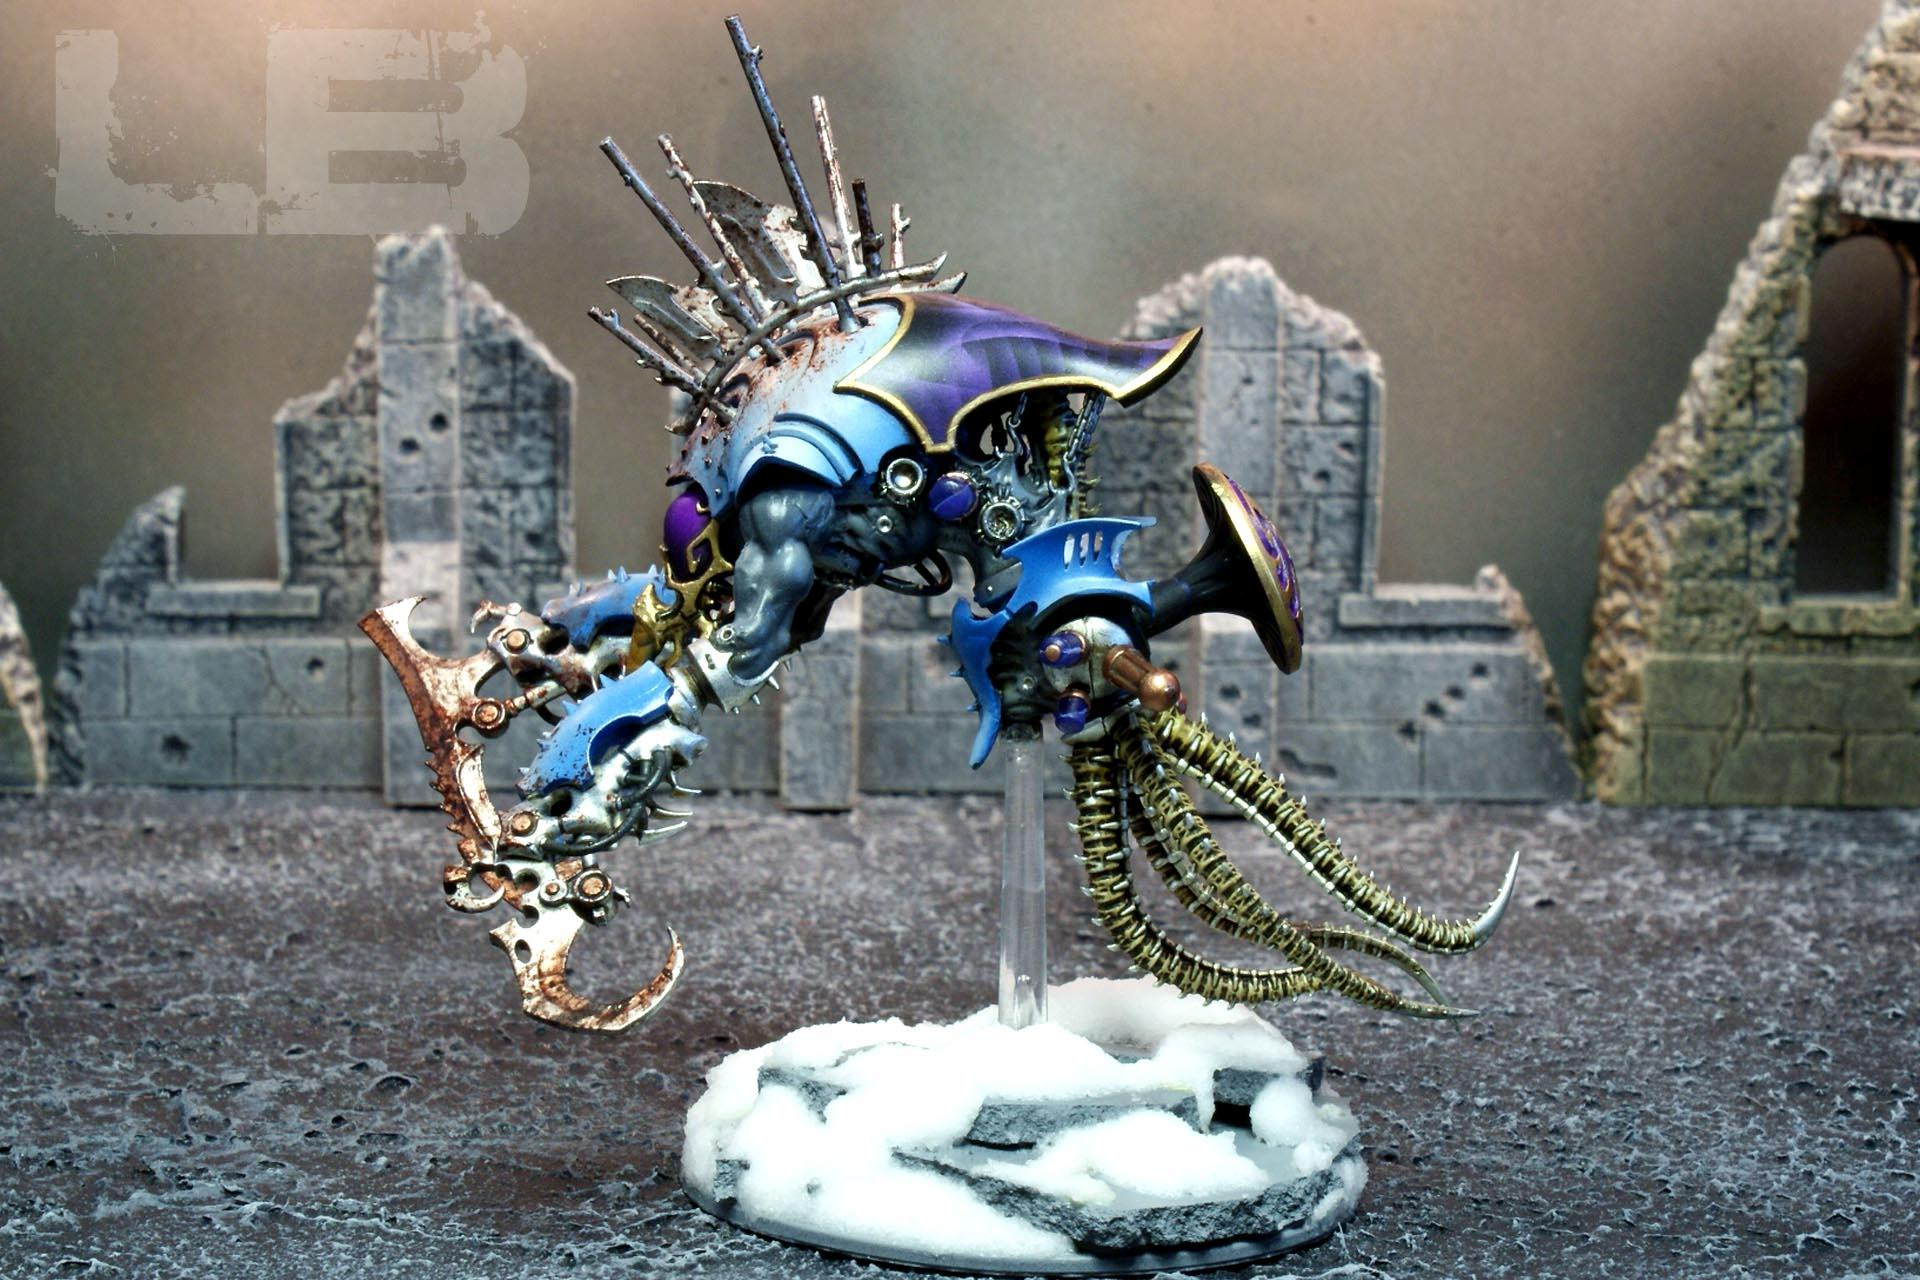 Awesome Paint Job, Awesomepaintjob.com, Close Combat Squad, Cronos, Cronos Parasite Engine, Dark Eldar, Dark Eldar Drow, Drow, Heavy Weapon, Ice, Ice Theme, Kabalite, Les Bursley, Lowkeyy, Martin Harris, Scourge, Snow, Snow Theme, Solarite, Talos, Talos Pain Engine, The Frozen Fang, Trueborn, Van Mccune, Vanhammer, Wych